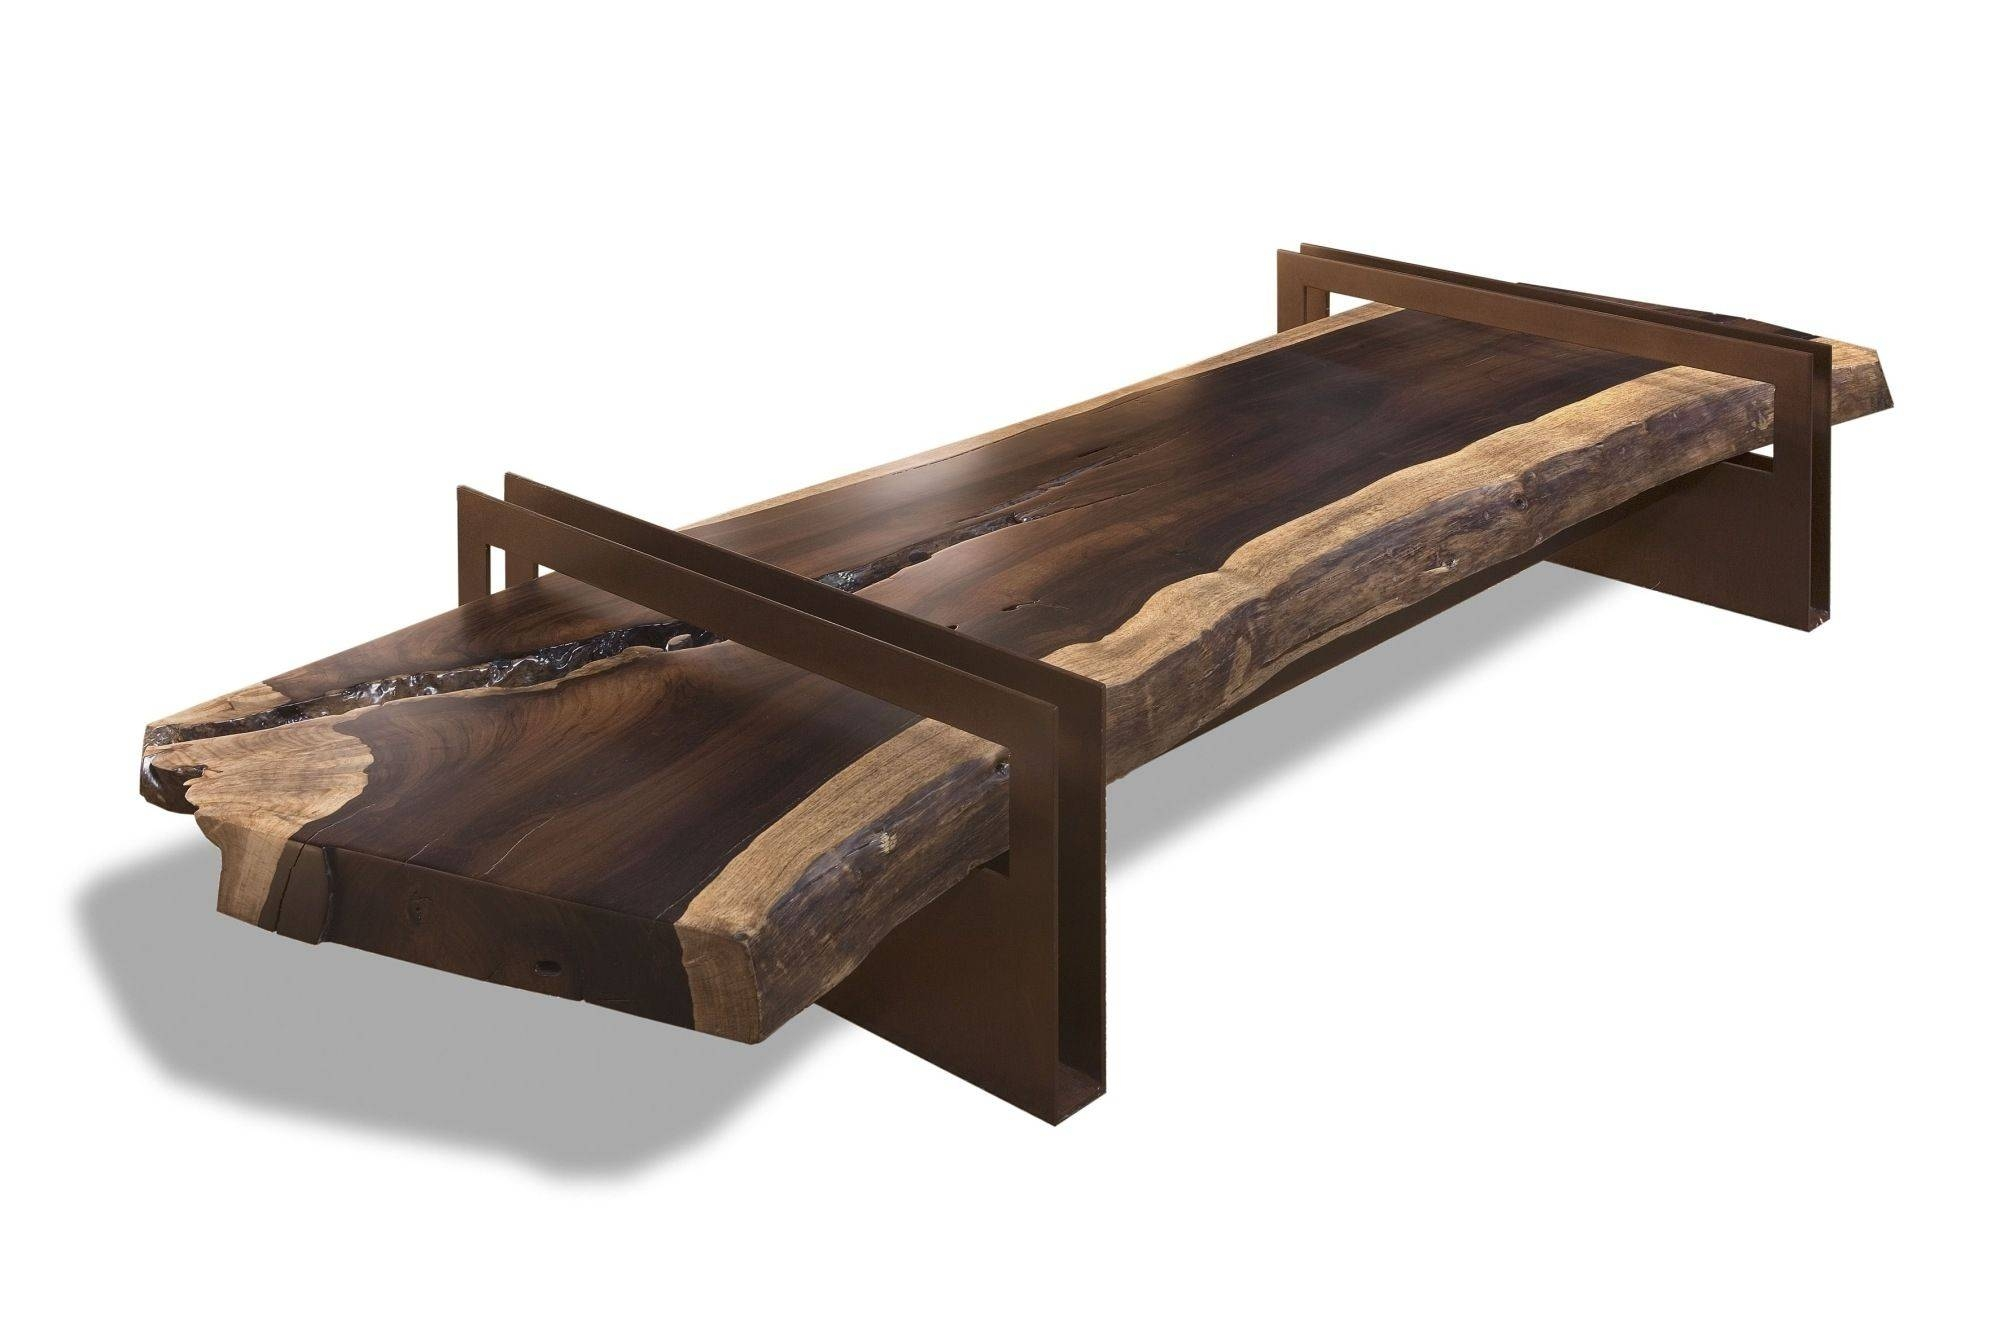 Wood Coffee Table. Salvaged Wood Coffee Table Popular Square pertaining to Large Wood Coffee Tables (Image 15 of 15)